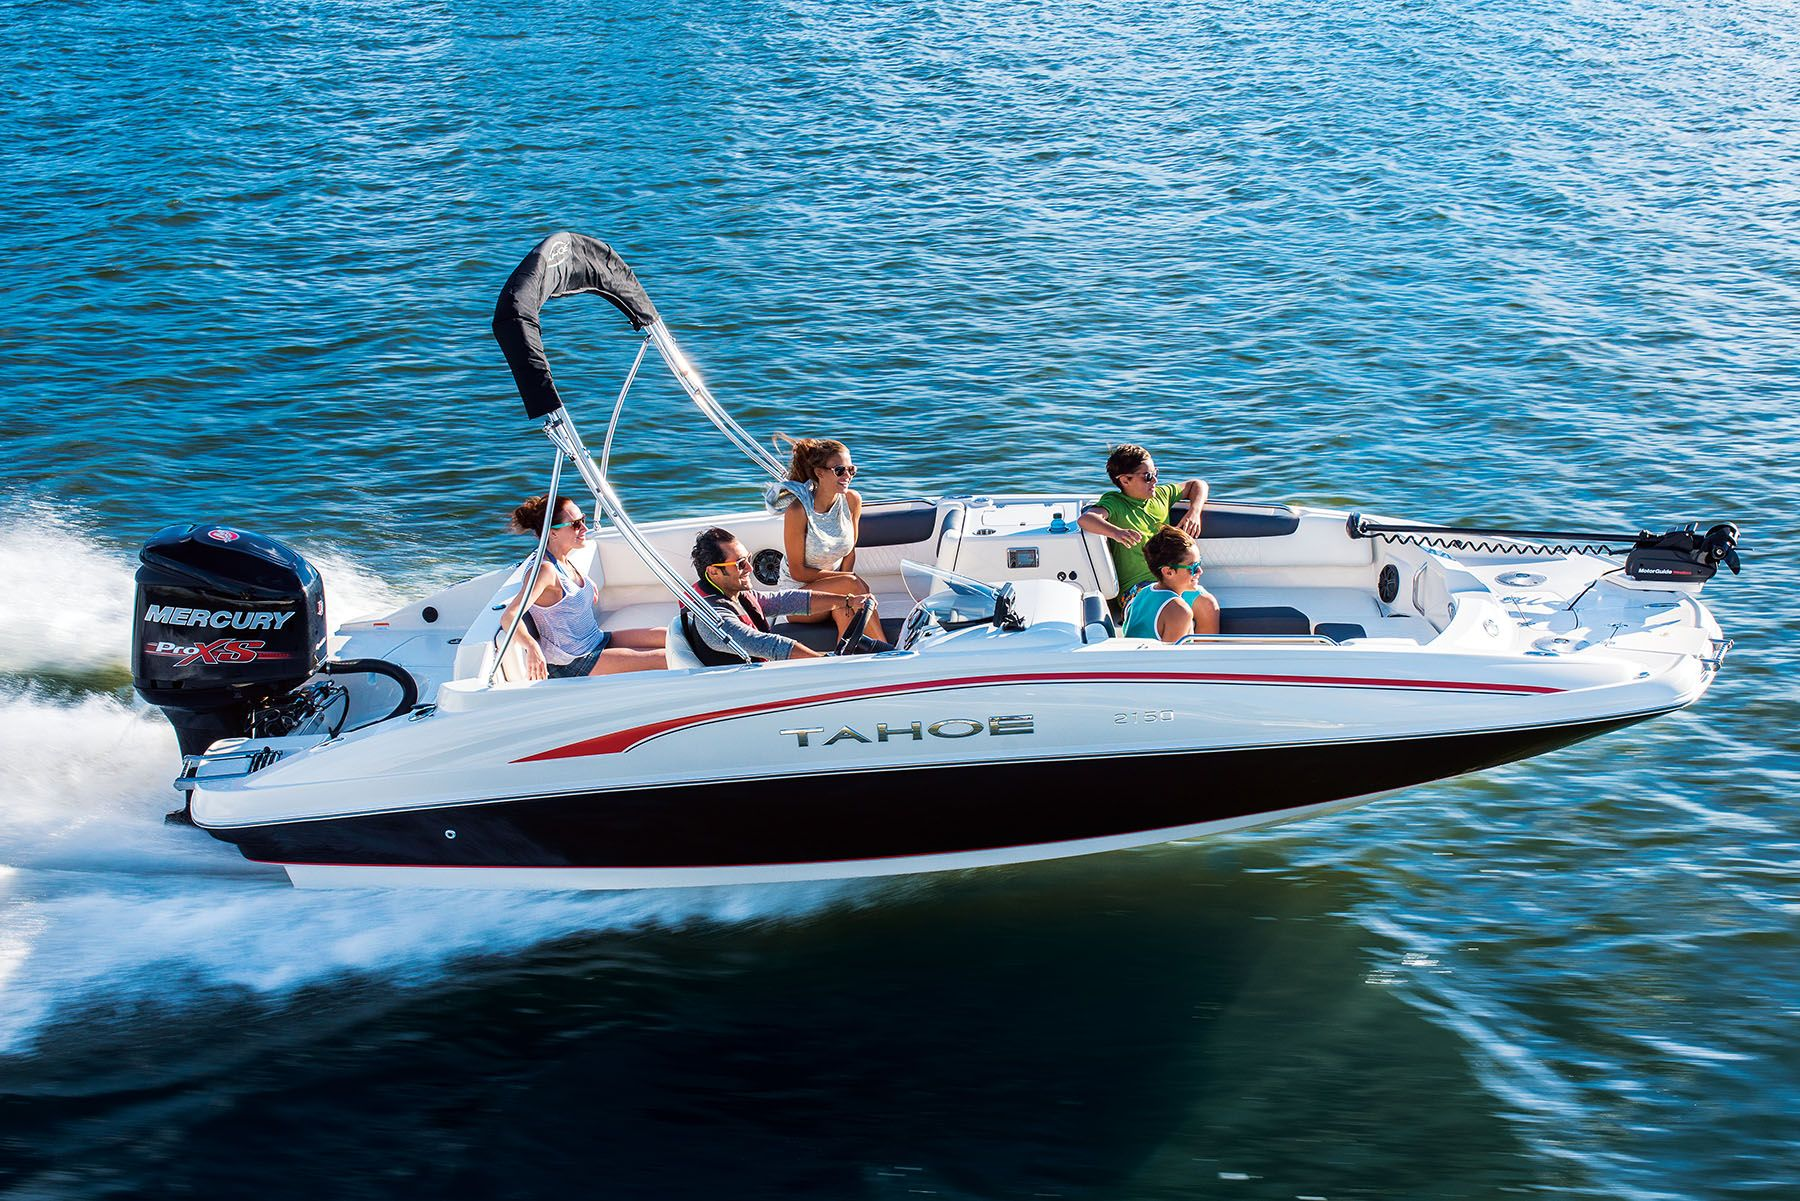 Tahoe 2150 Deck Boat Available through Springfield Tracker